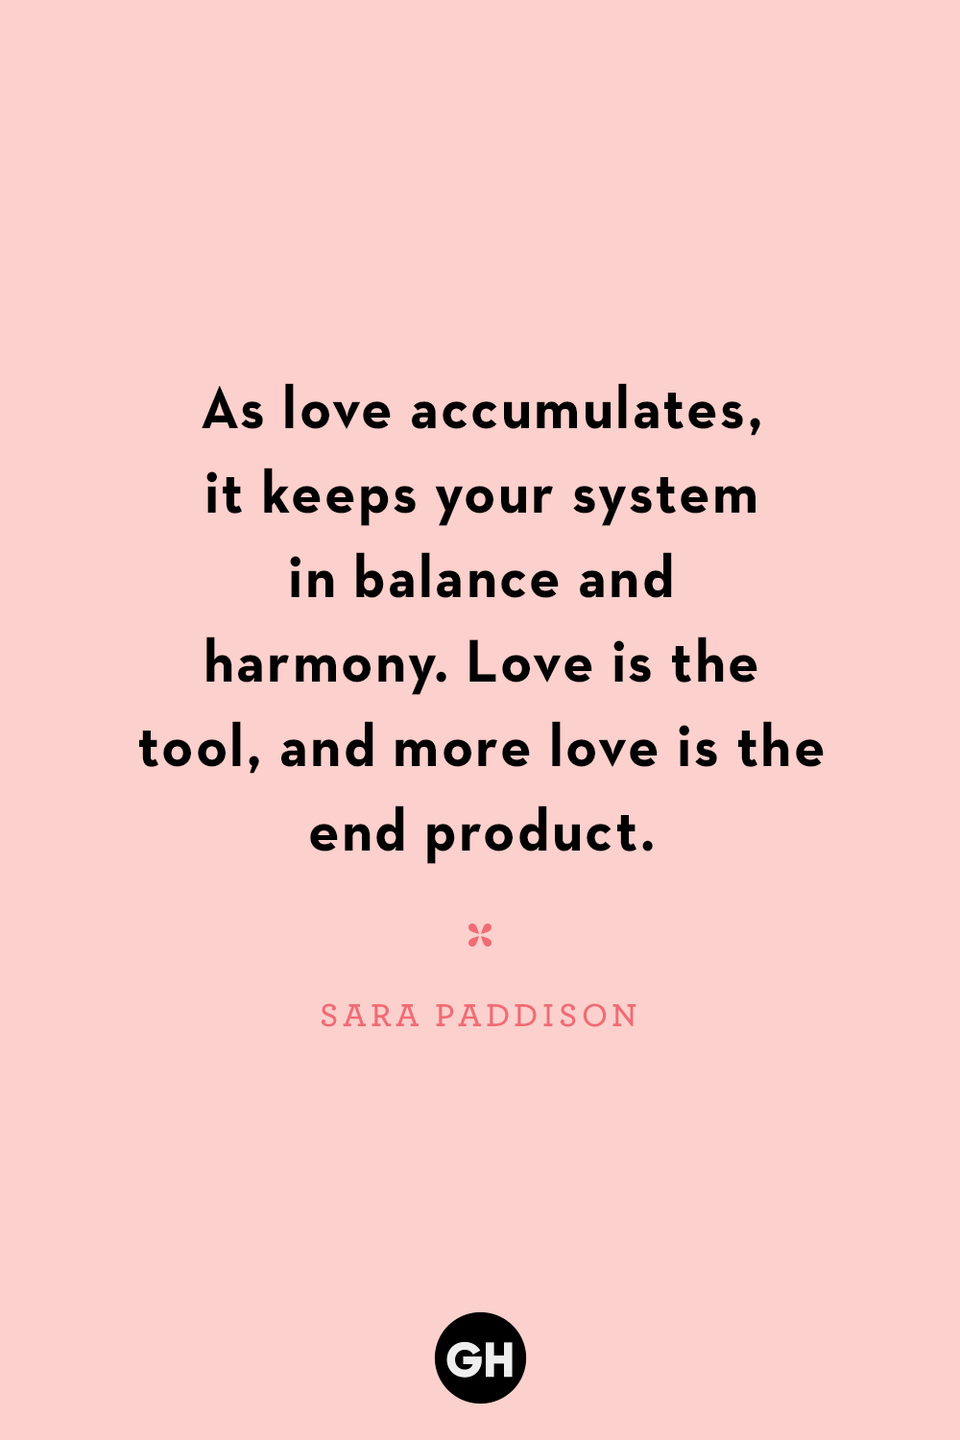 <p>As love accumulates, it keeps your system in balance and harmony. Love is the tool, and more love is the end product.</p>